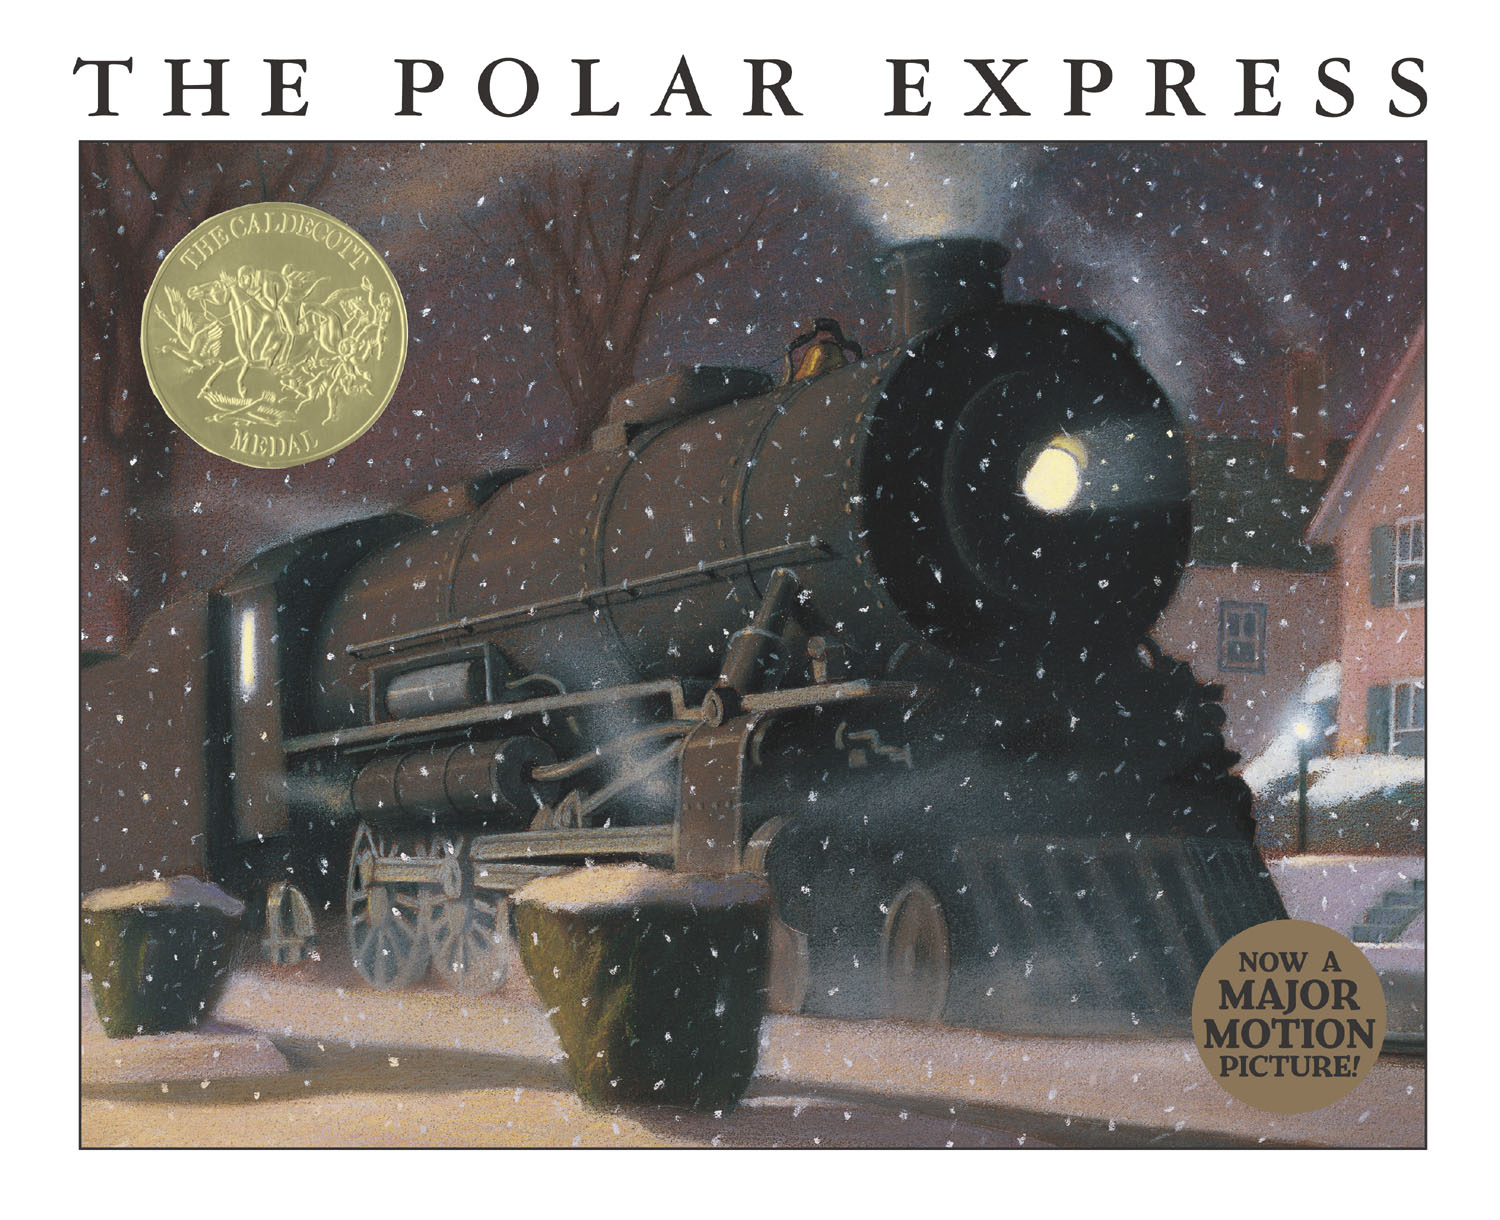 All Aboard! Polar Express pulls into town for Christmas